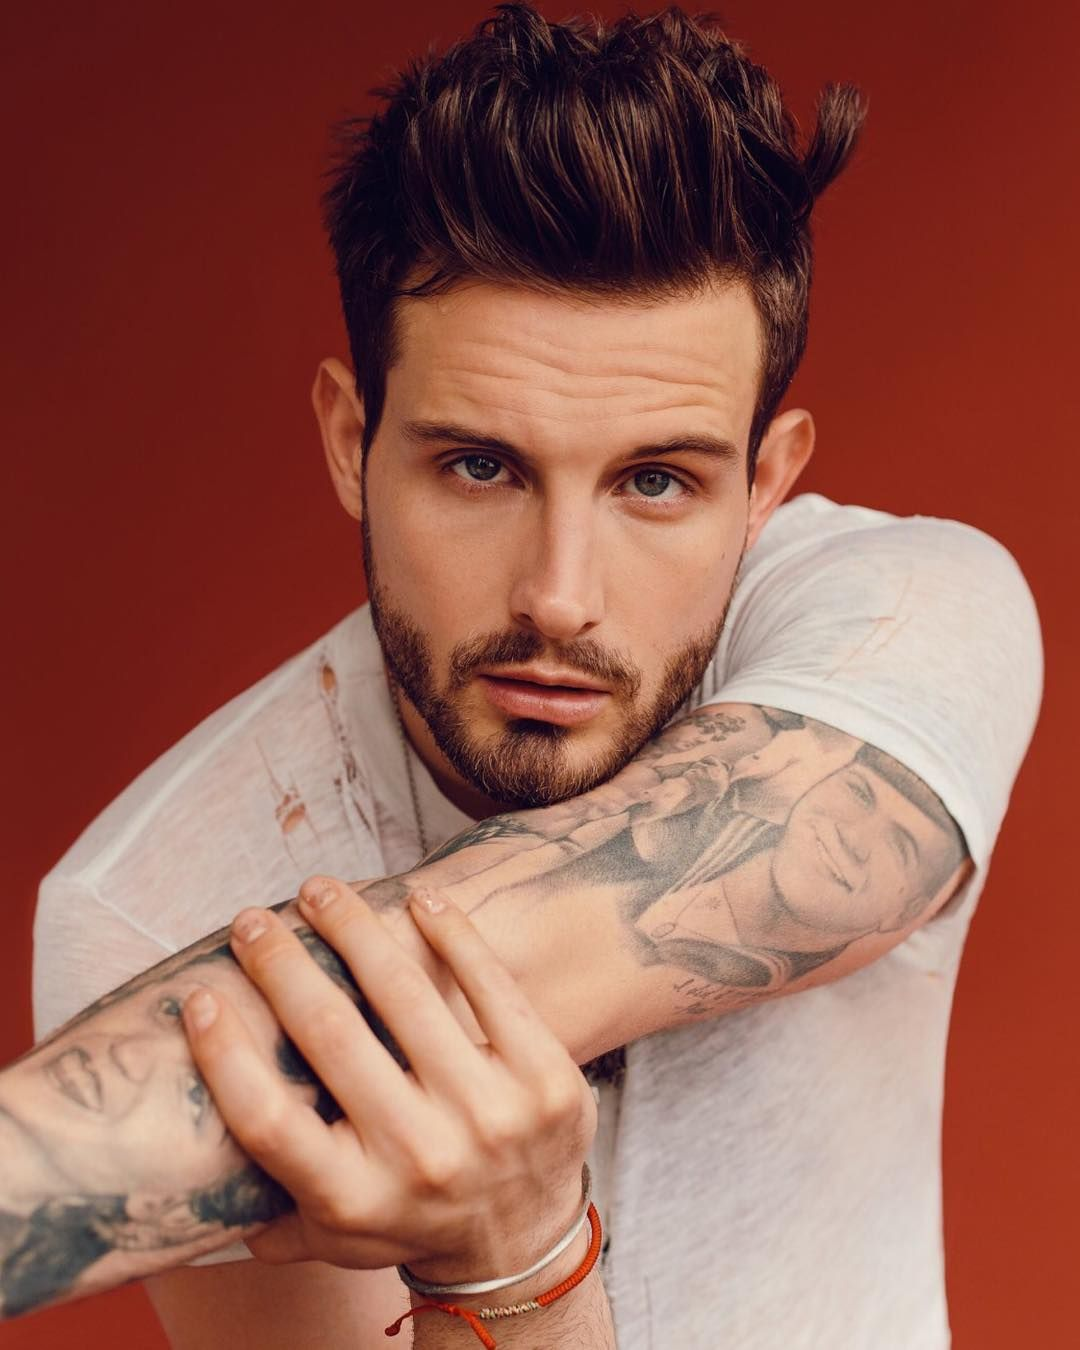 """Photo of Nico Tortorella on Instagram: """"""""This past December I wrote a book of poetry titled ALL OF IT IS YOU. In the transformational process of compiling a body of creative work,…"""""""